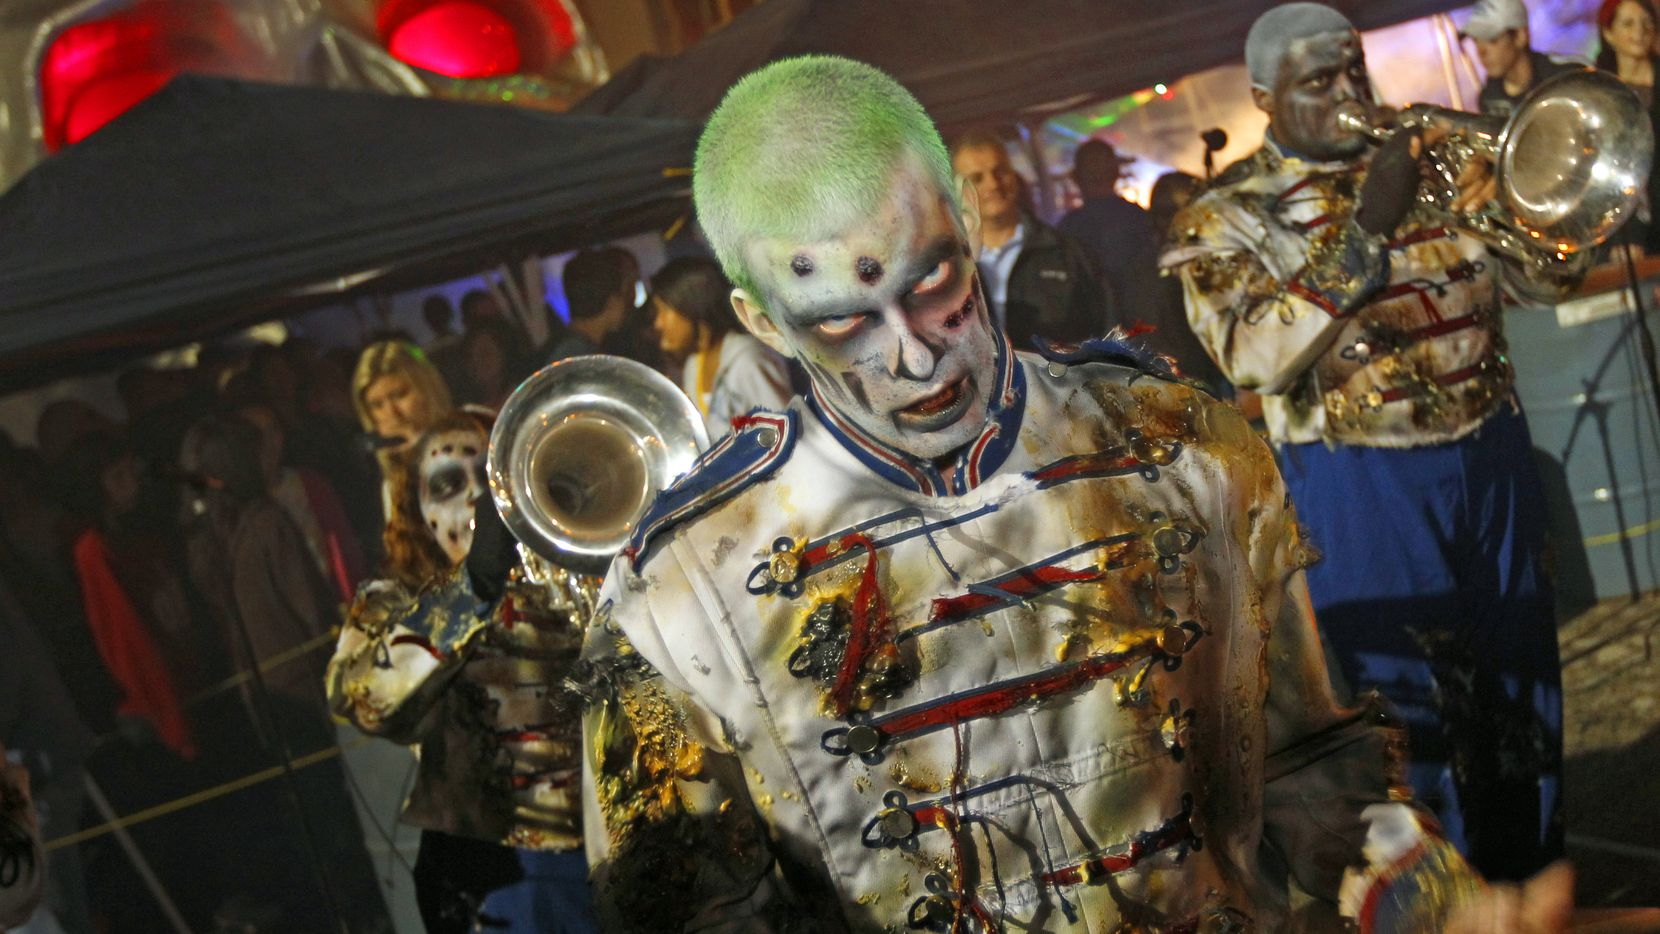 Cutting Edge Haunted House, located in a former meatpacking plant in Fort Worth, is one of the area's frightening destinations for thrill-seekers this Halloween season.